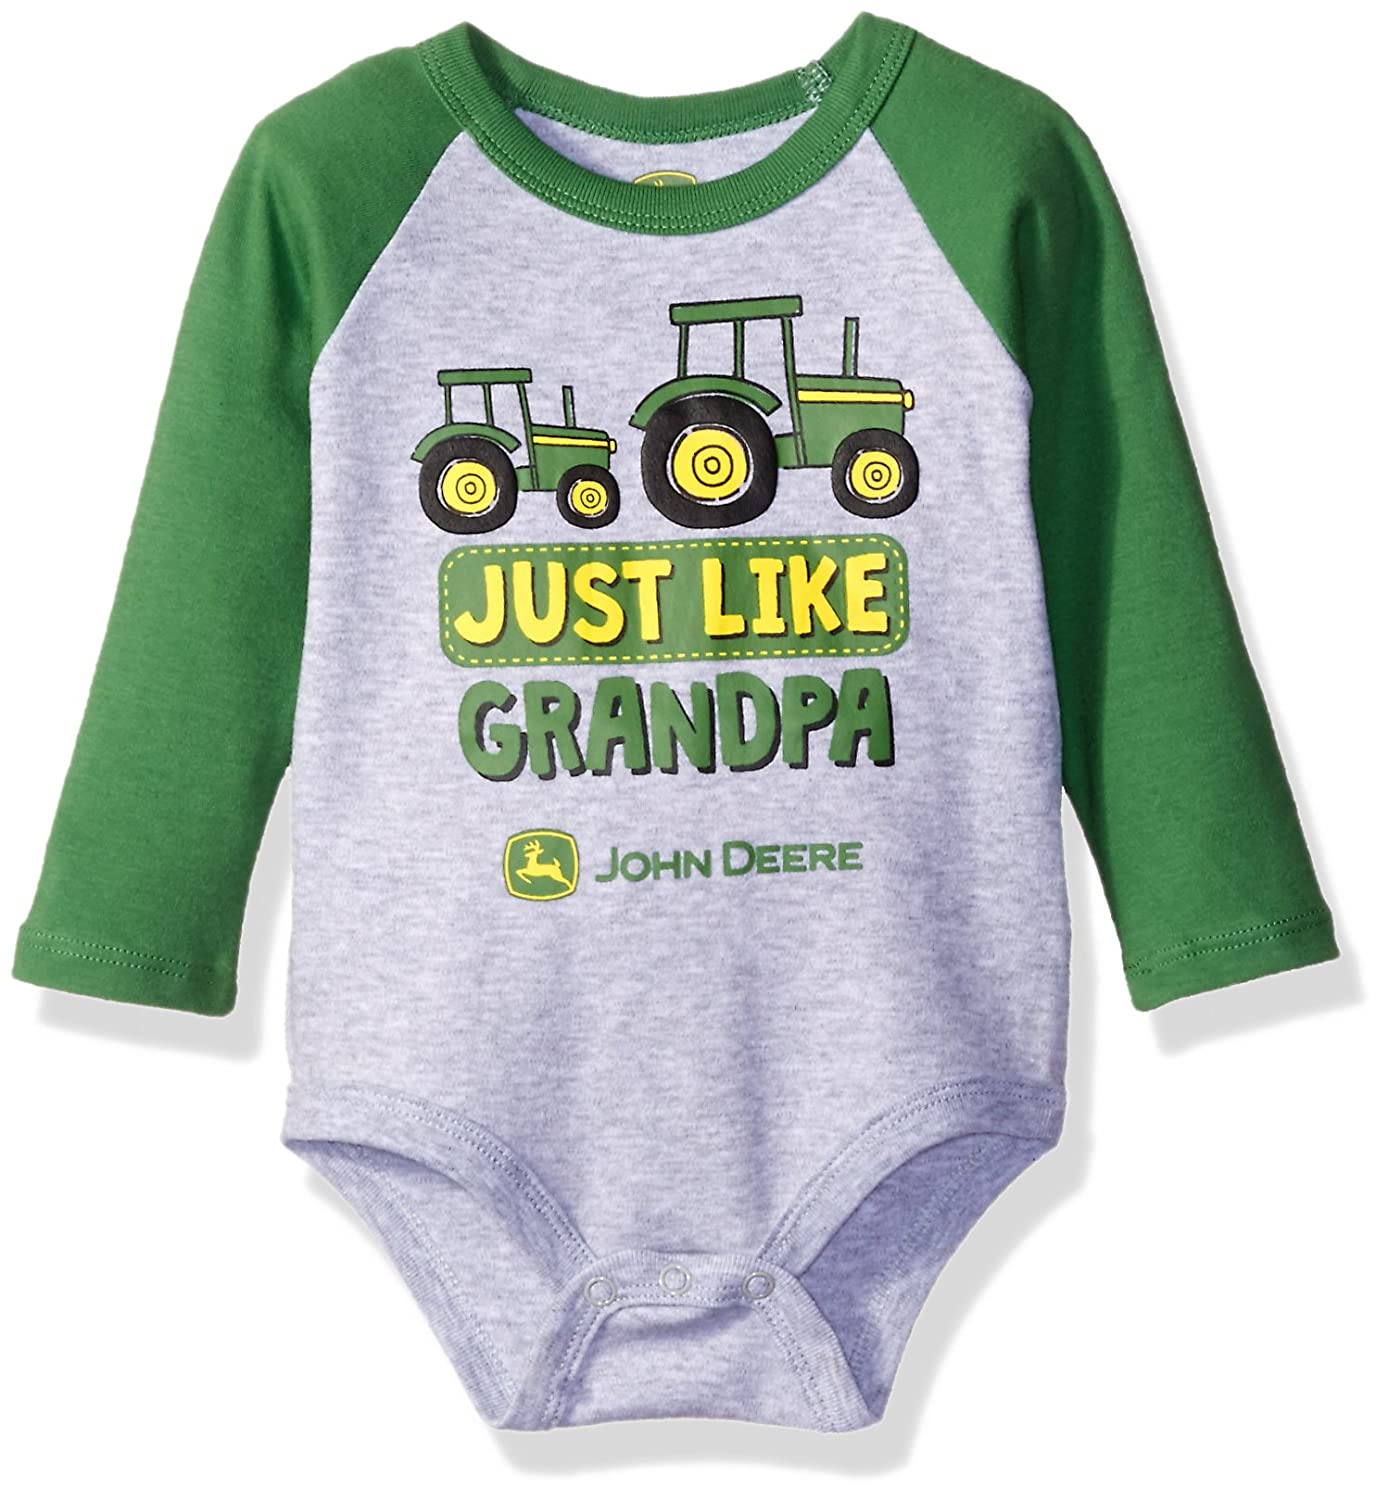 440v.cf Try Prime Clothing NEW WOMEN MEN KIDS & BABY LUGGAGE BRANDS DEALS Search results. of results for Clothing: John Deere. John Deere Adults Juniper Green Deluxe Overalls. £ - £ 5 out of 5 stars 3. John Deere Classic Cap Green.